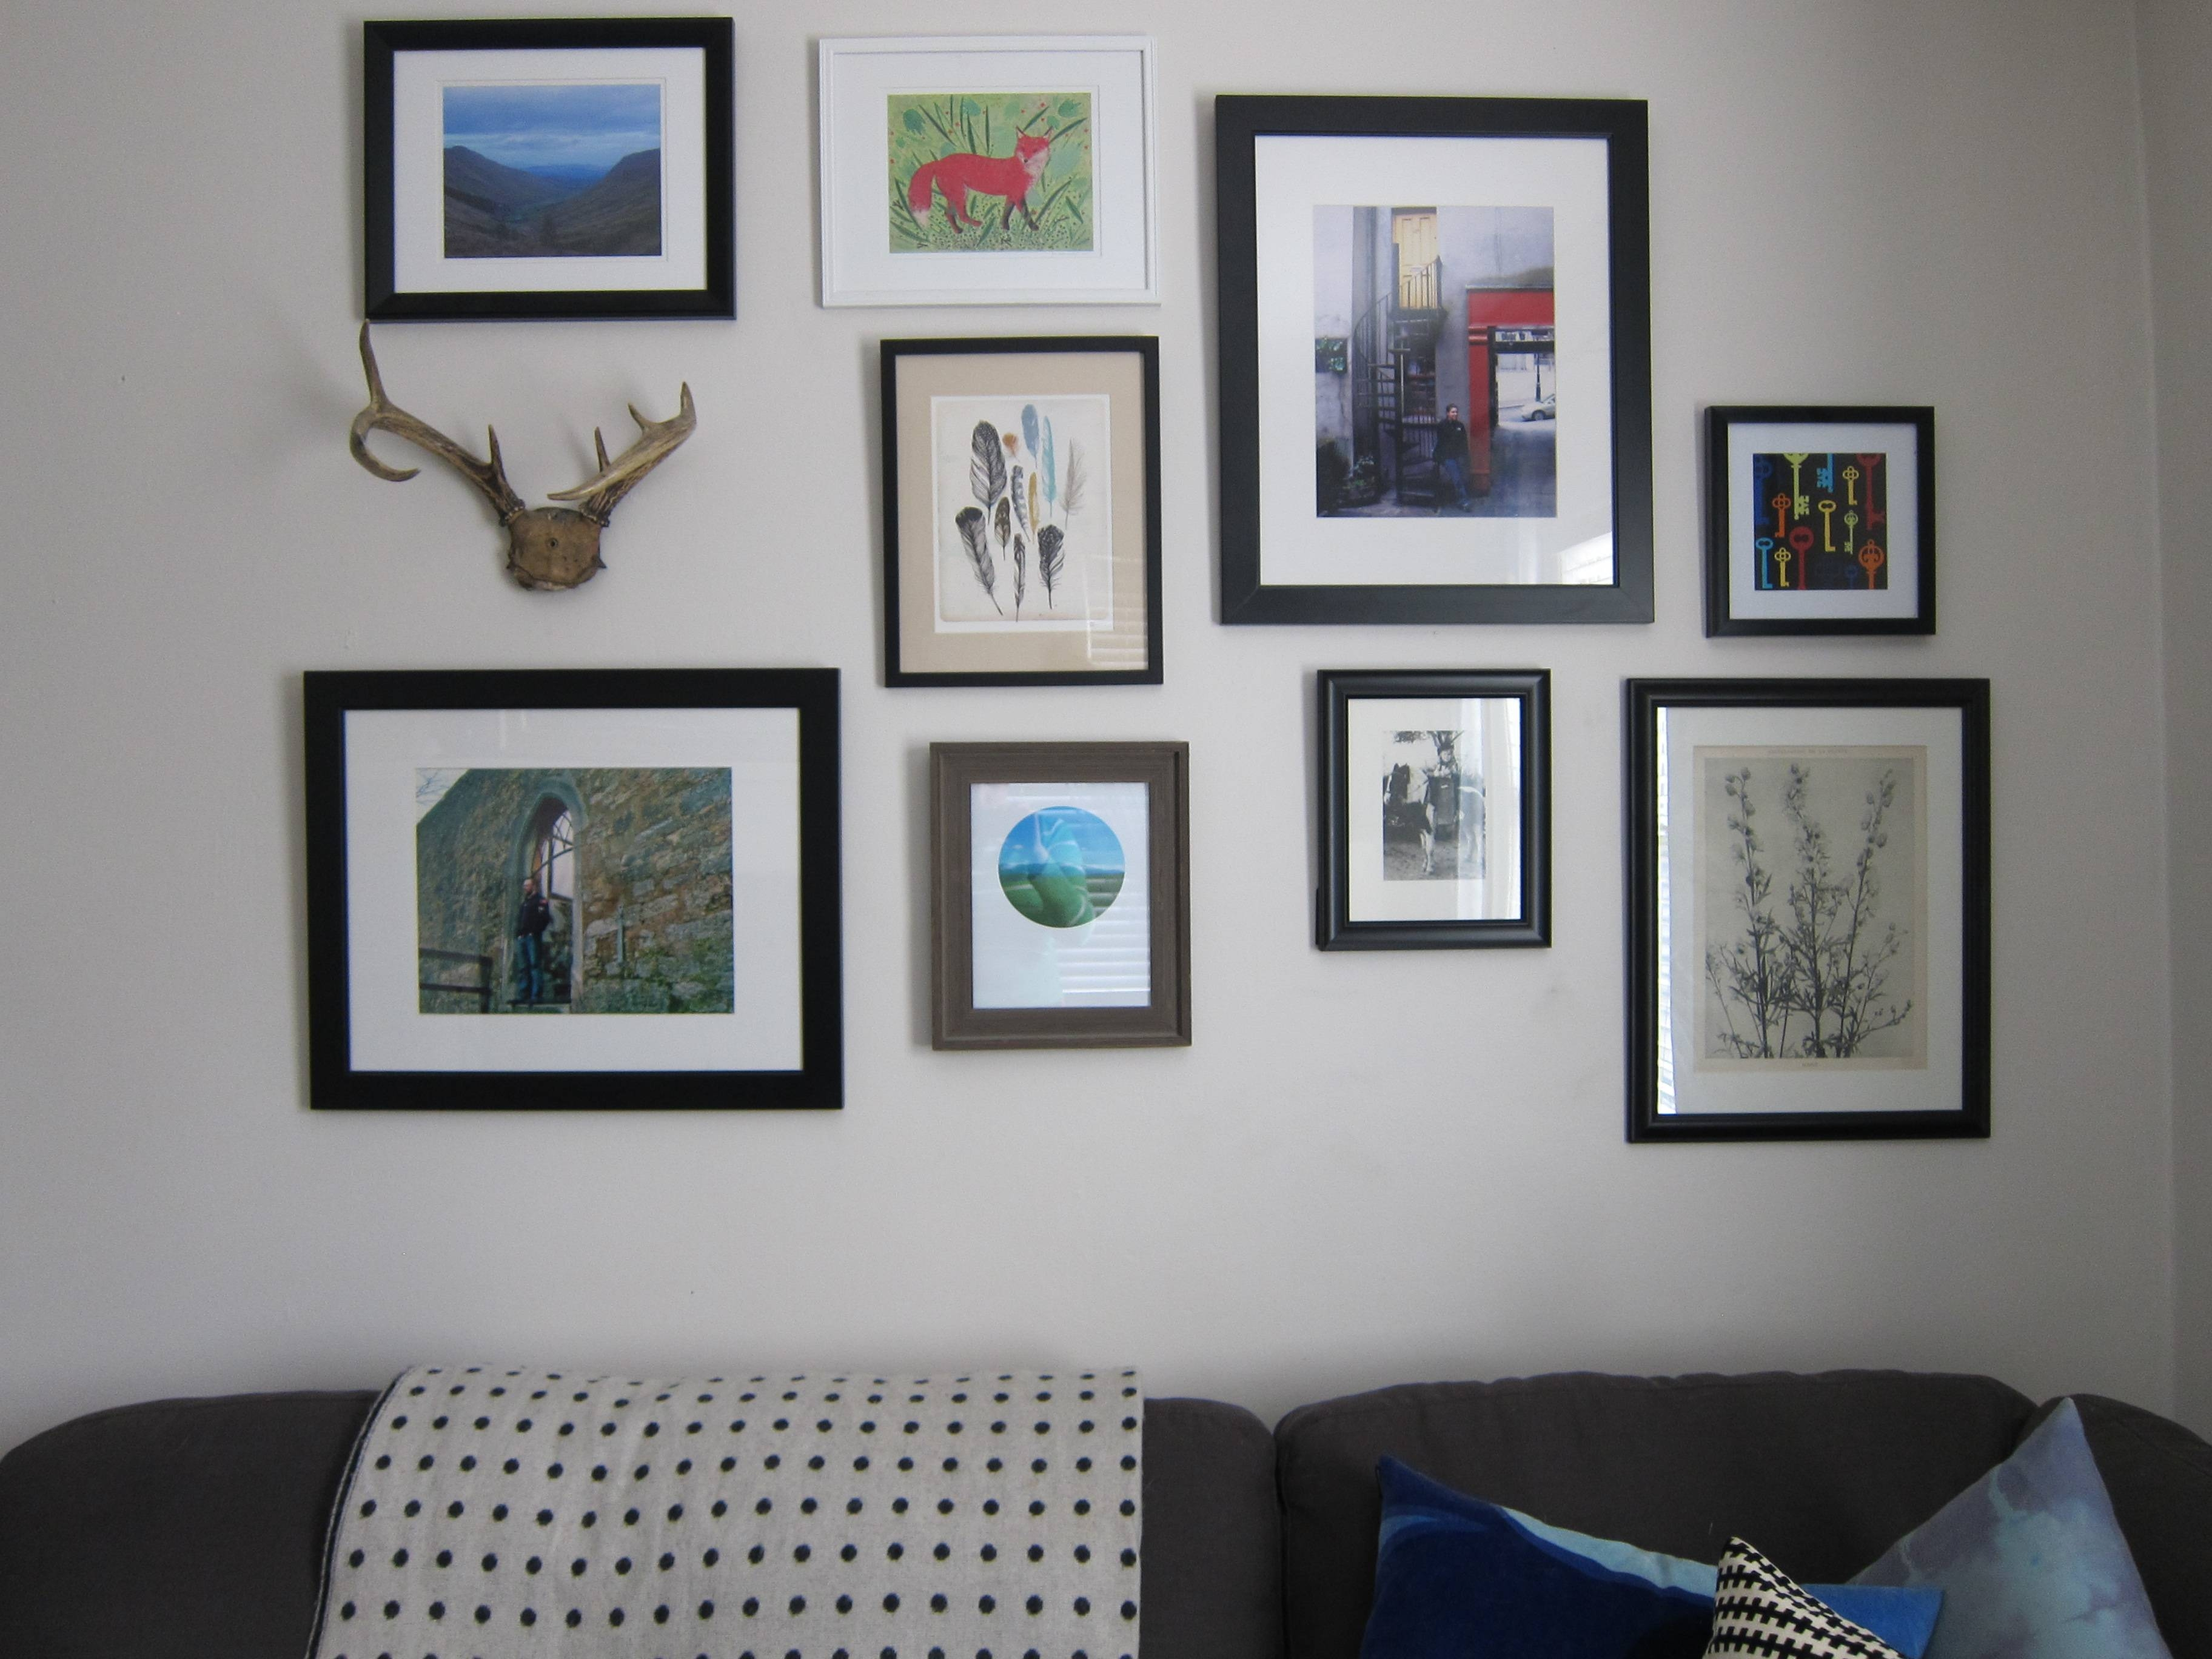 Frame Wall Additions | Escape From Bk For 2017 Wall Art Frames (View 9 of 20)